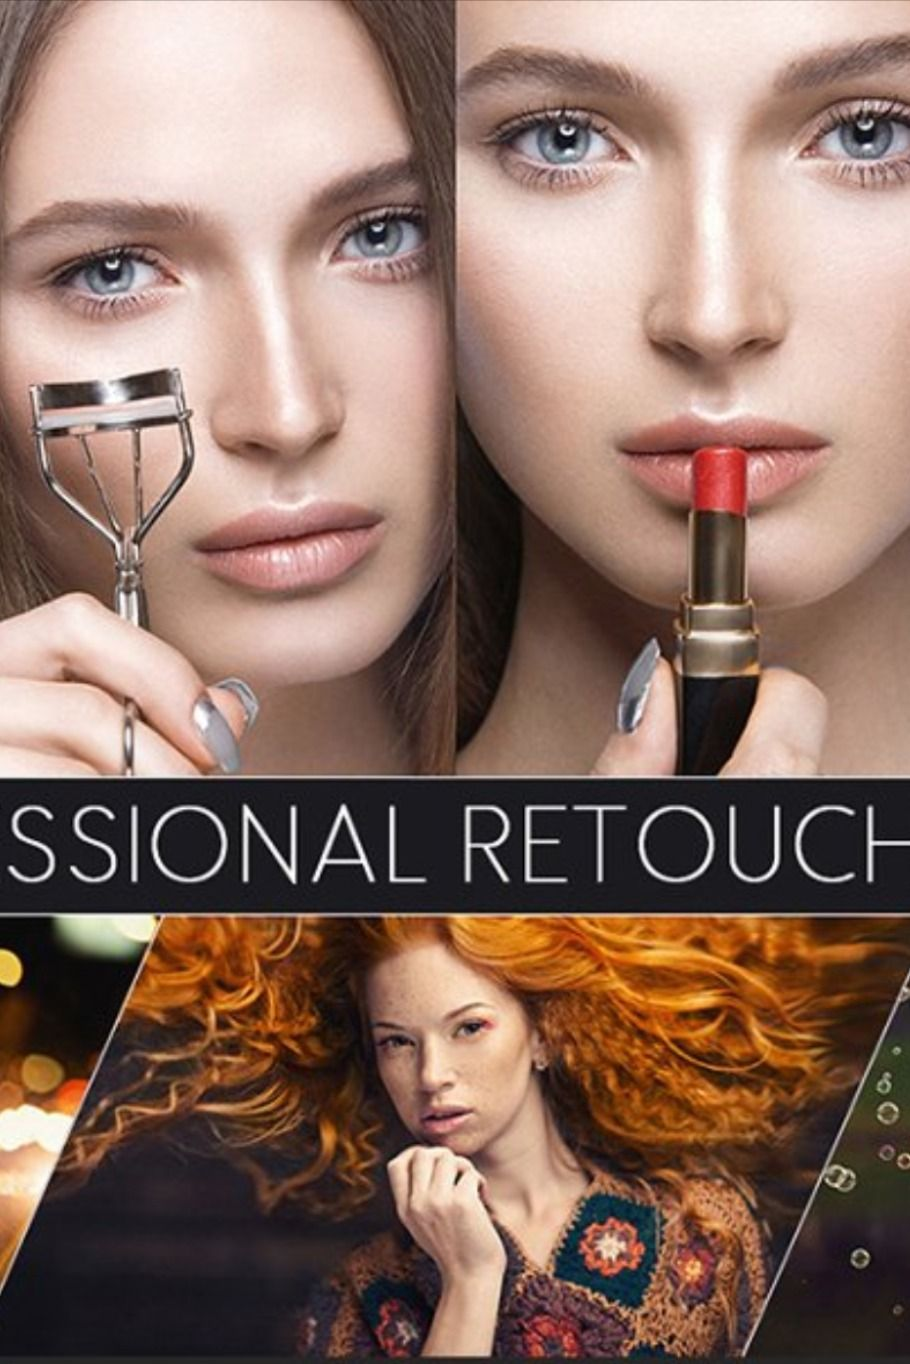 100 Professional Retouch Actions Skin retouching